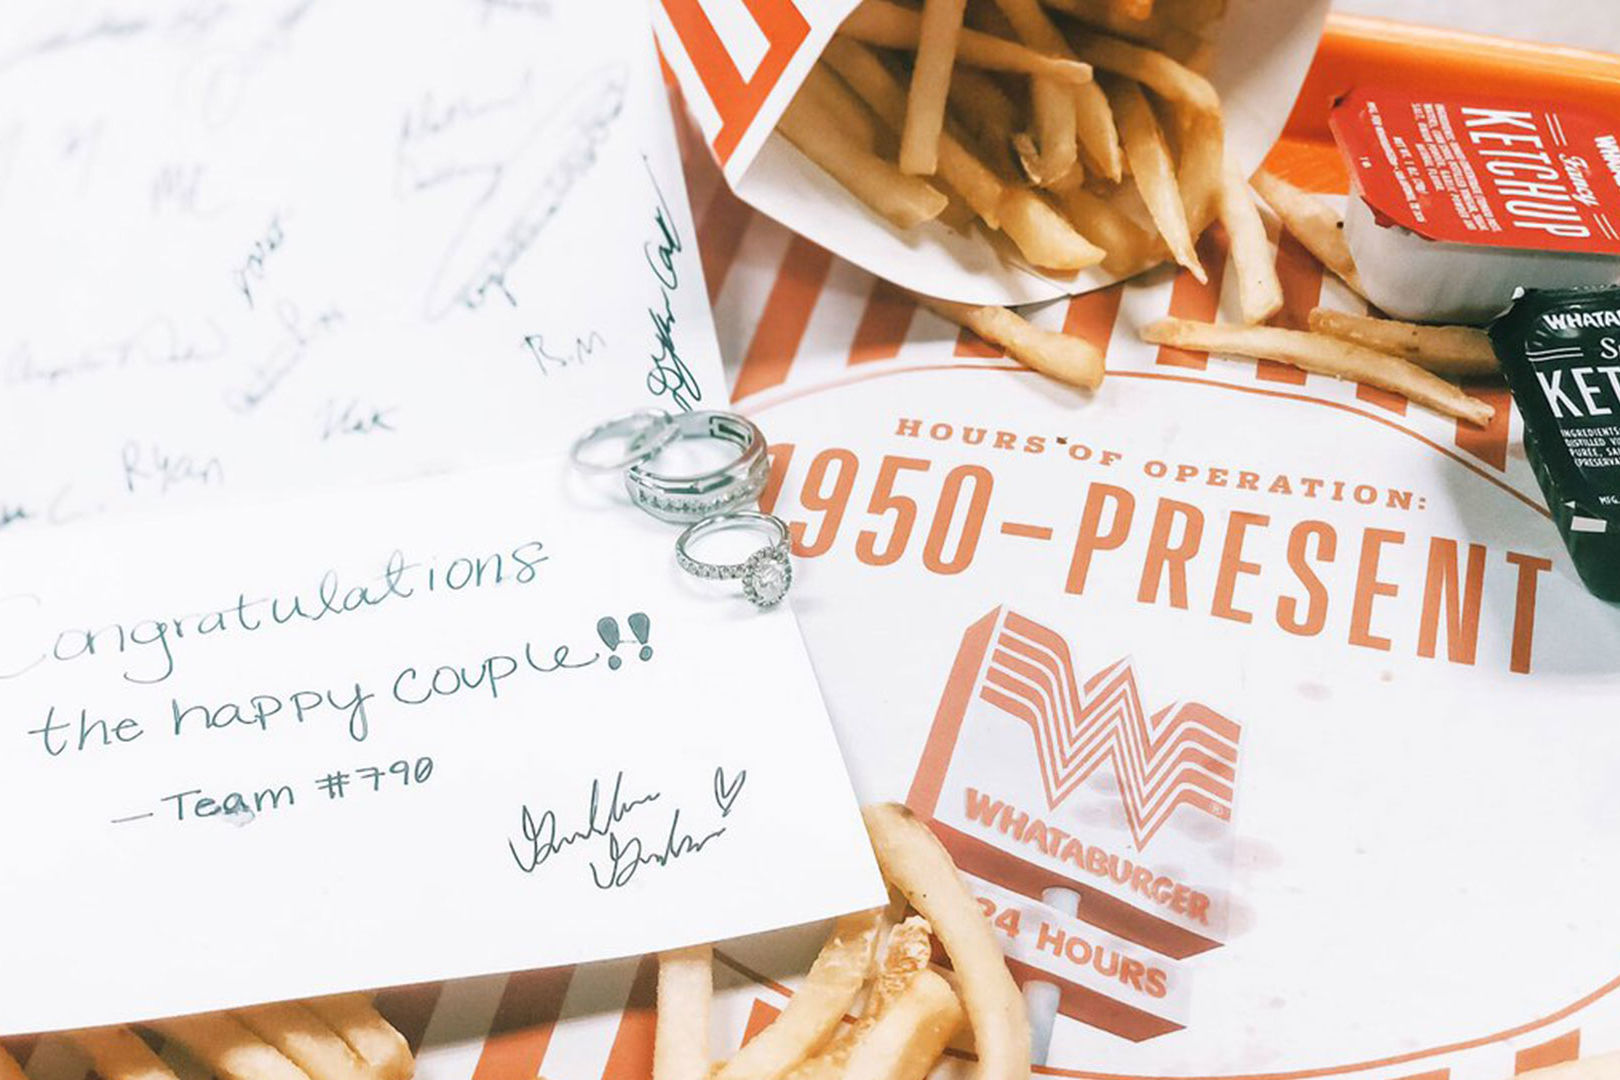 Texas Couple Hosts Surprise Second Wedding Ceremony at Whataburger